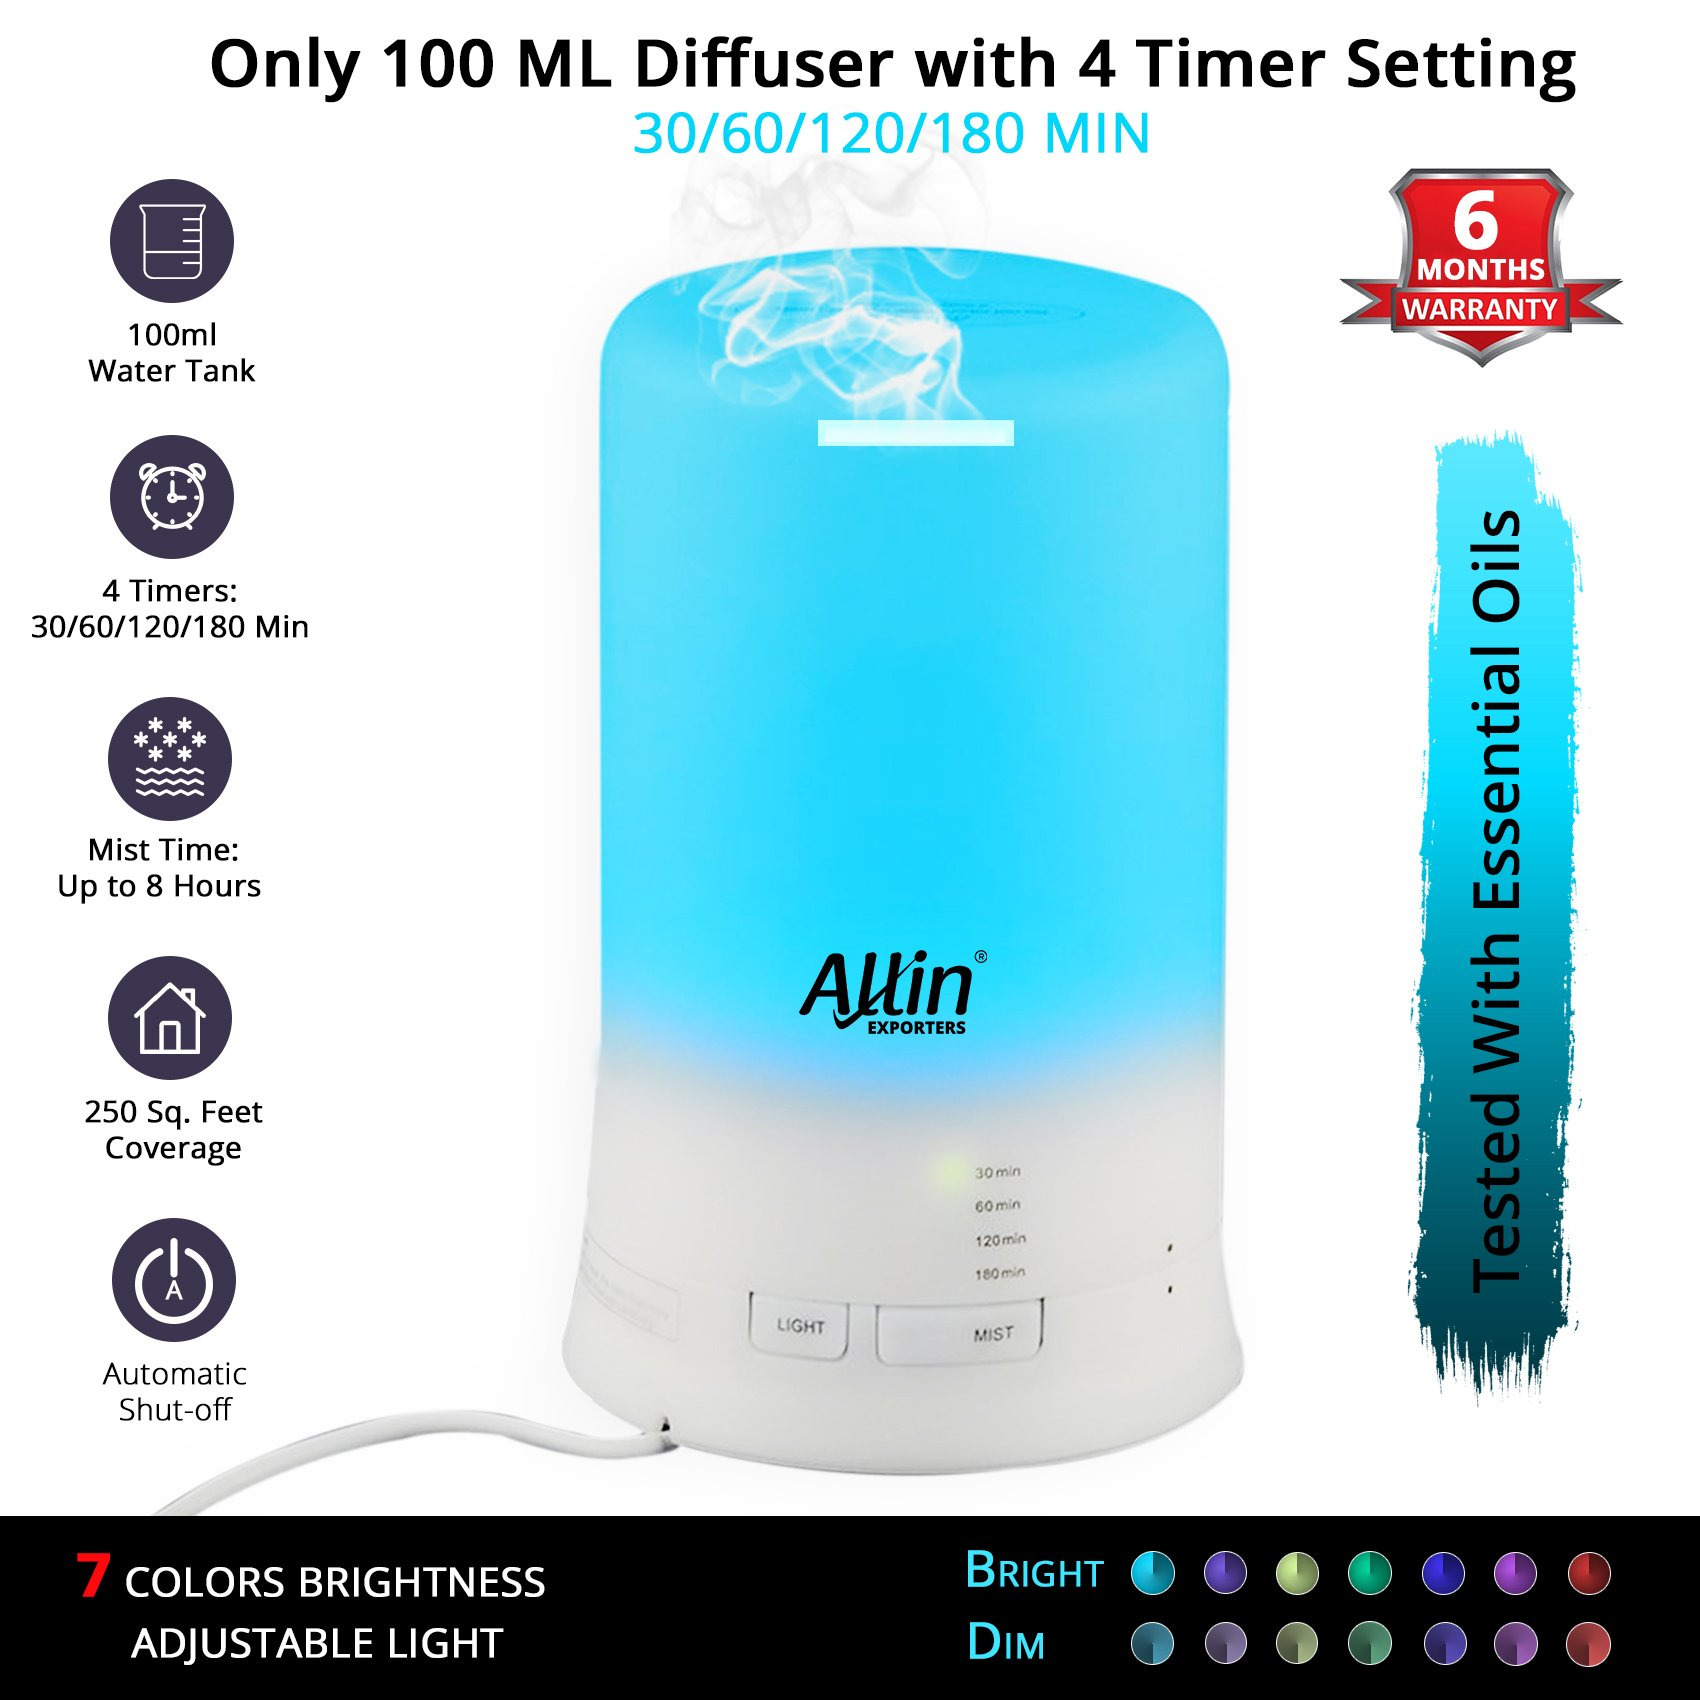 Best Rated In Home Fragrance Helpful Customer Reviews Buds Organics Mozzie Clear Spray 100ml Allin Exporters Dt 2109 Cool Mist Ultrasonic Humidifier Aroma Diffuser With 4 Timer Setting And